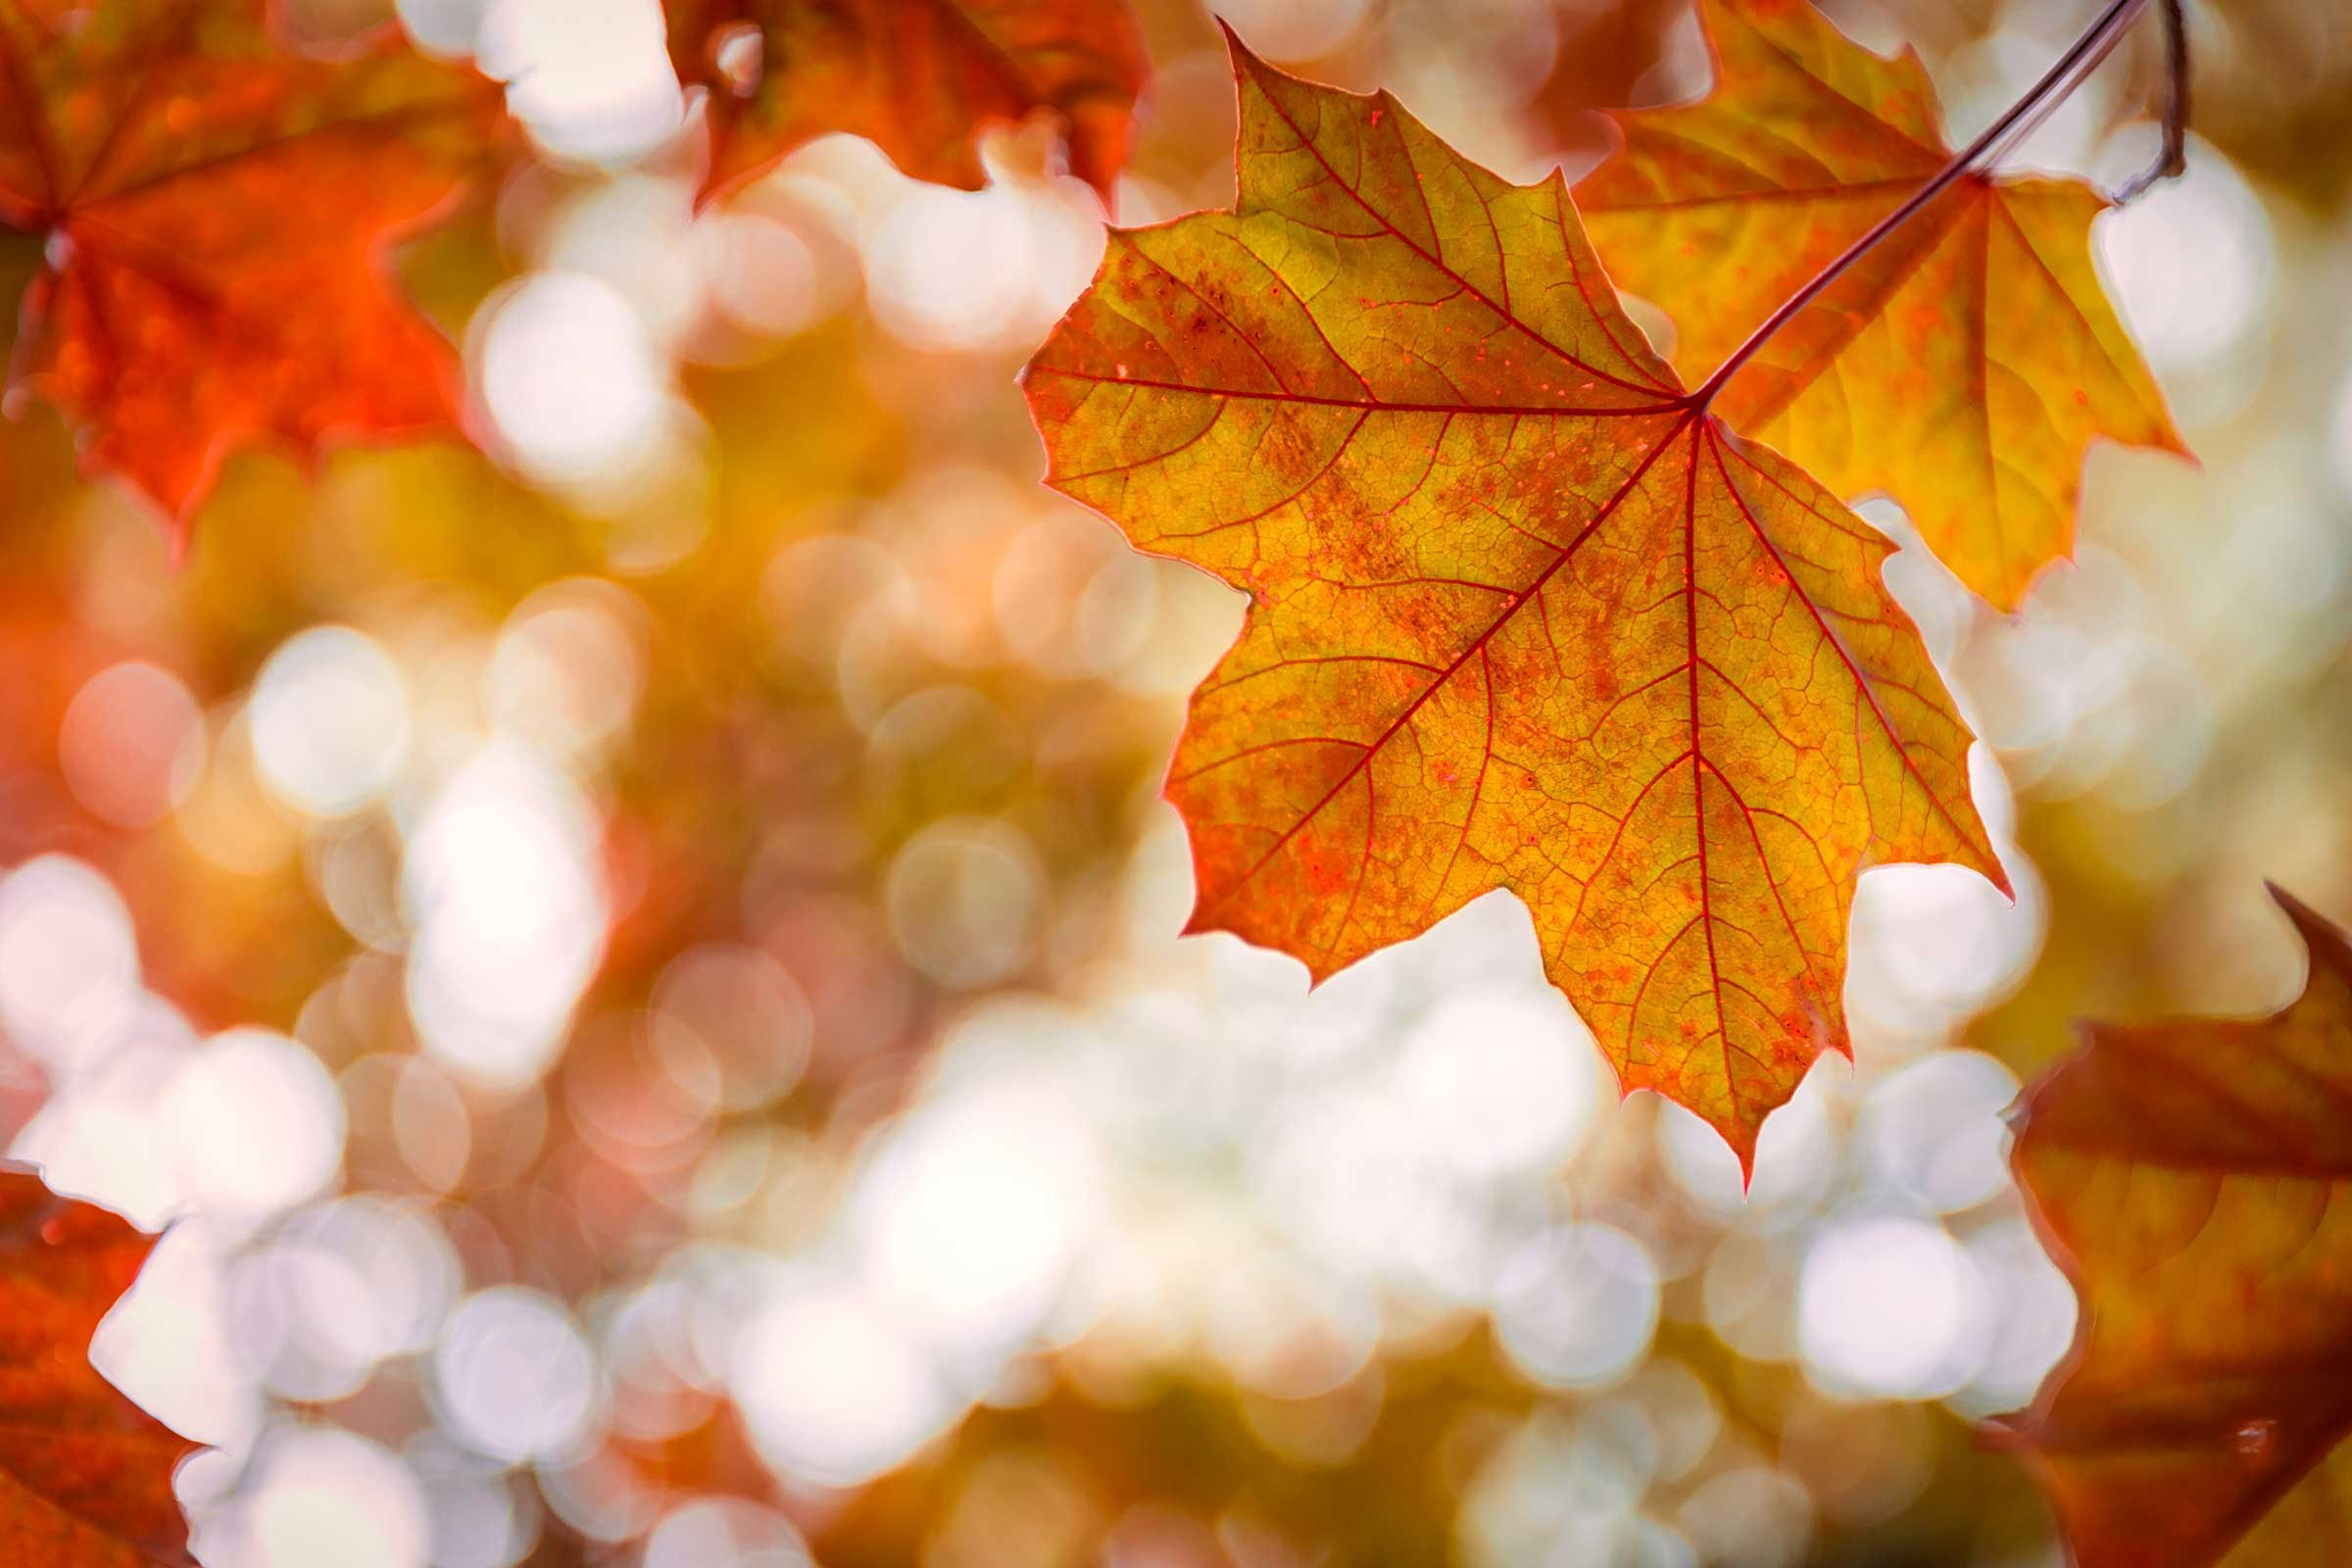 Autumn Falling Leaves Live Wallpaper 21 Mind Blowing Facts About Autumn Reader S Digest